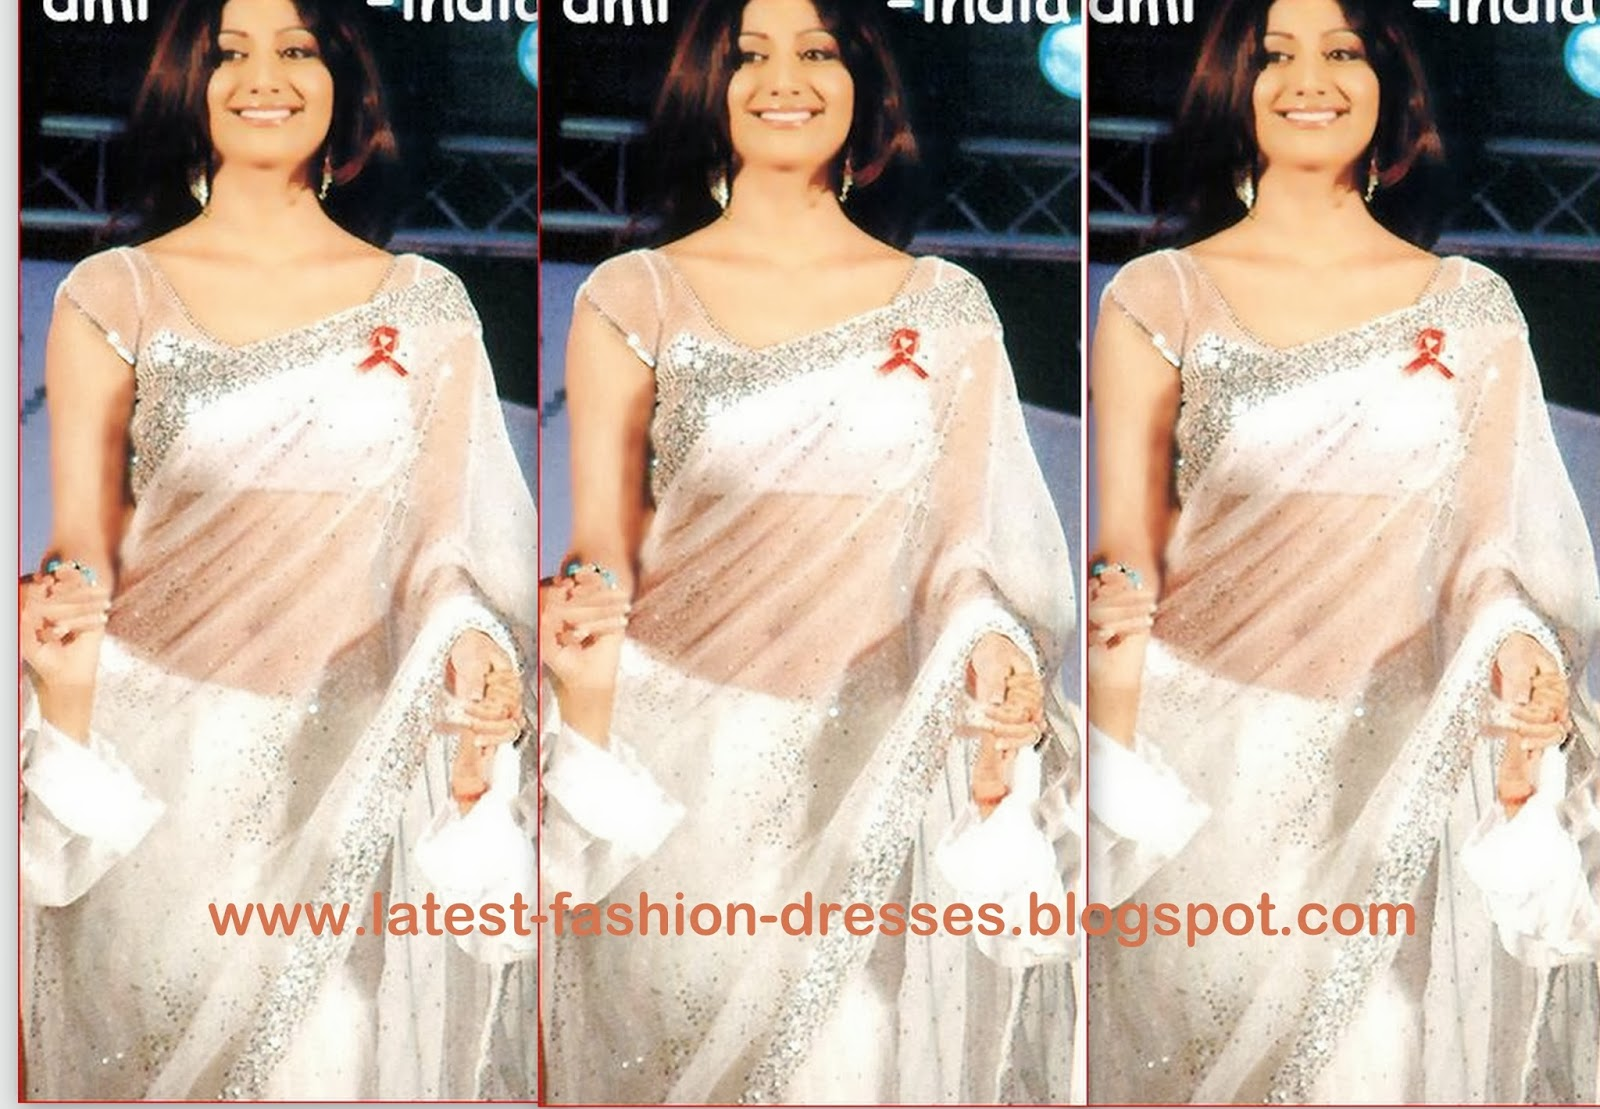 shilpa shety in white colour designer saree